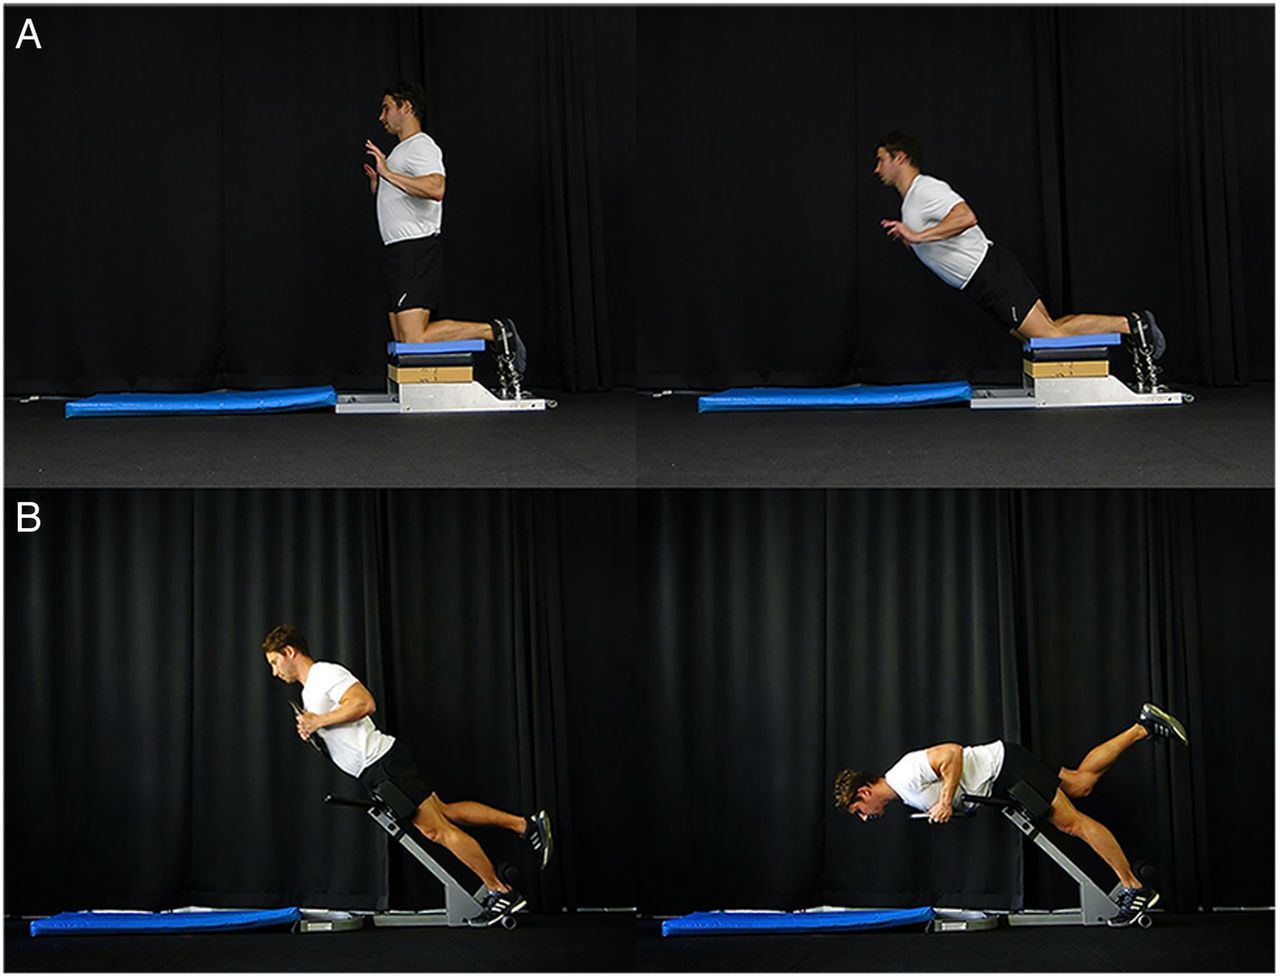 Impact of the Nordic hamstring and hip extension exercises